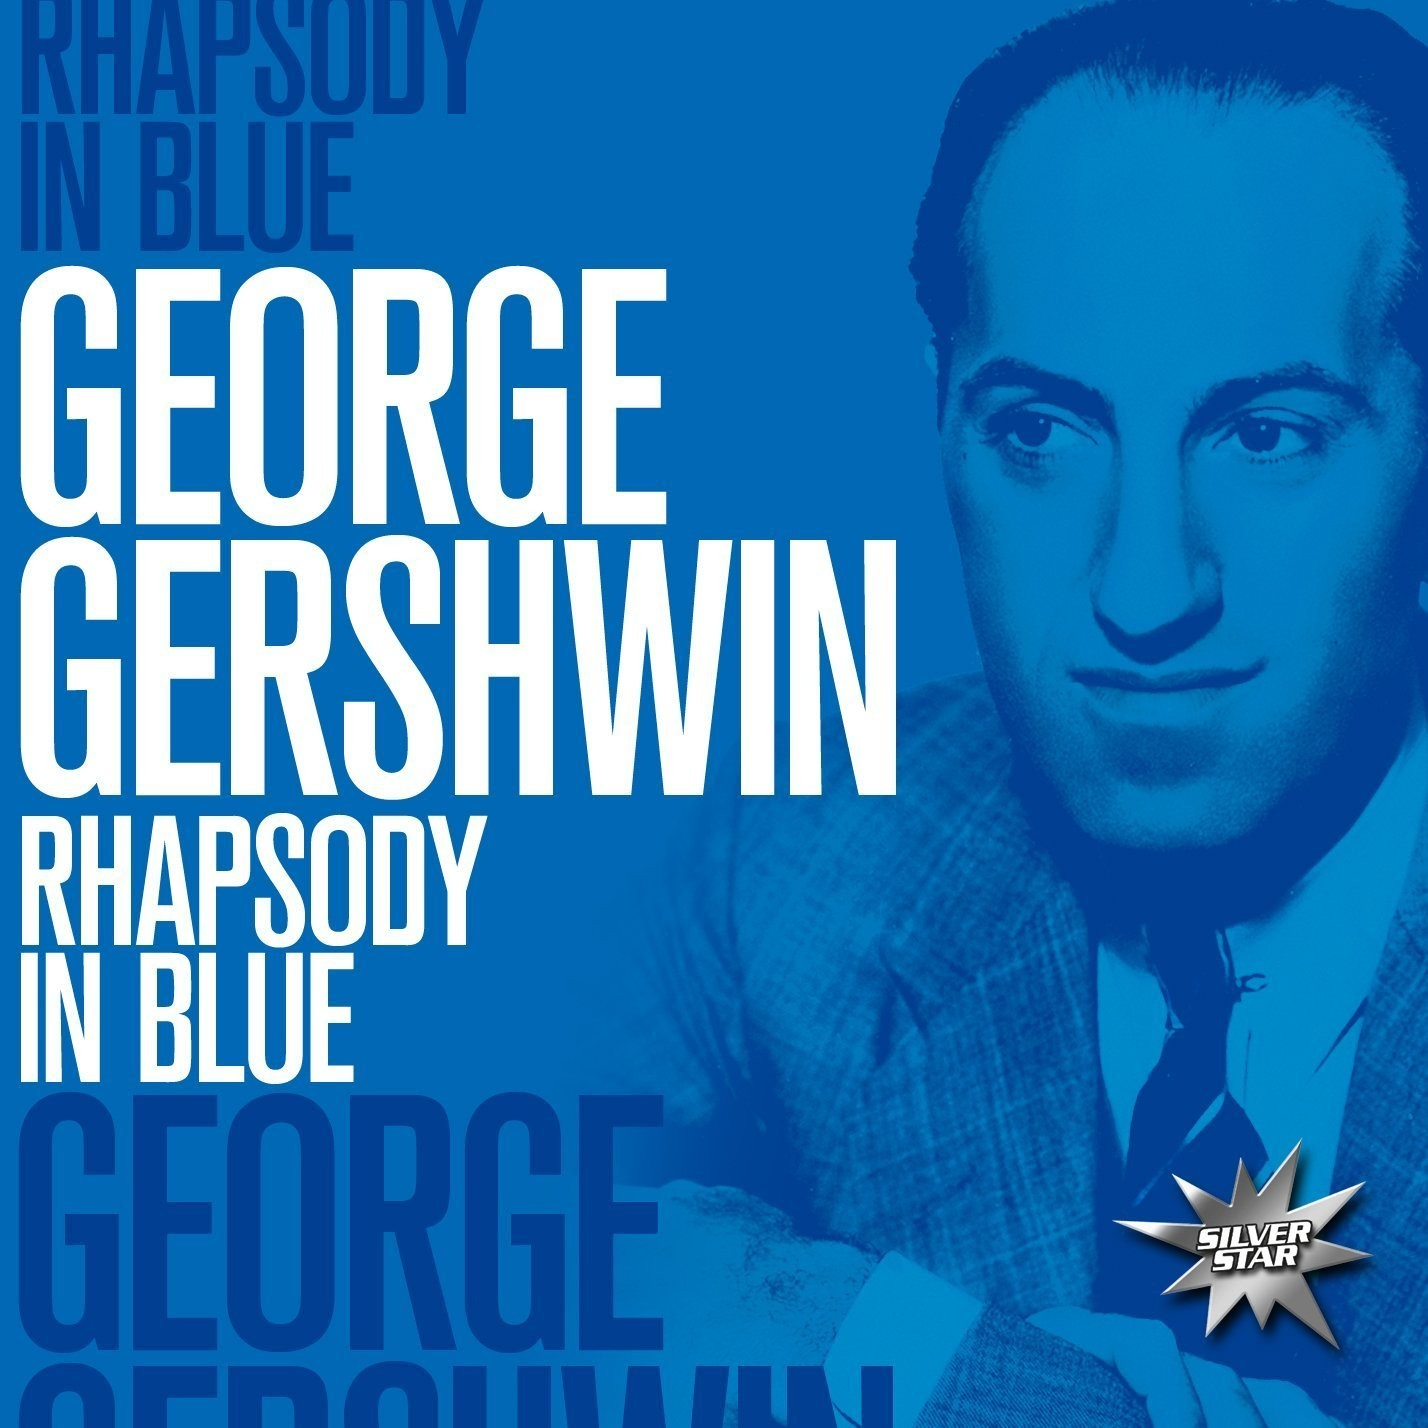 film music site rhapsody in blue soundtrack george. Black Bedroom Furniture Sets. Home Design Ideas